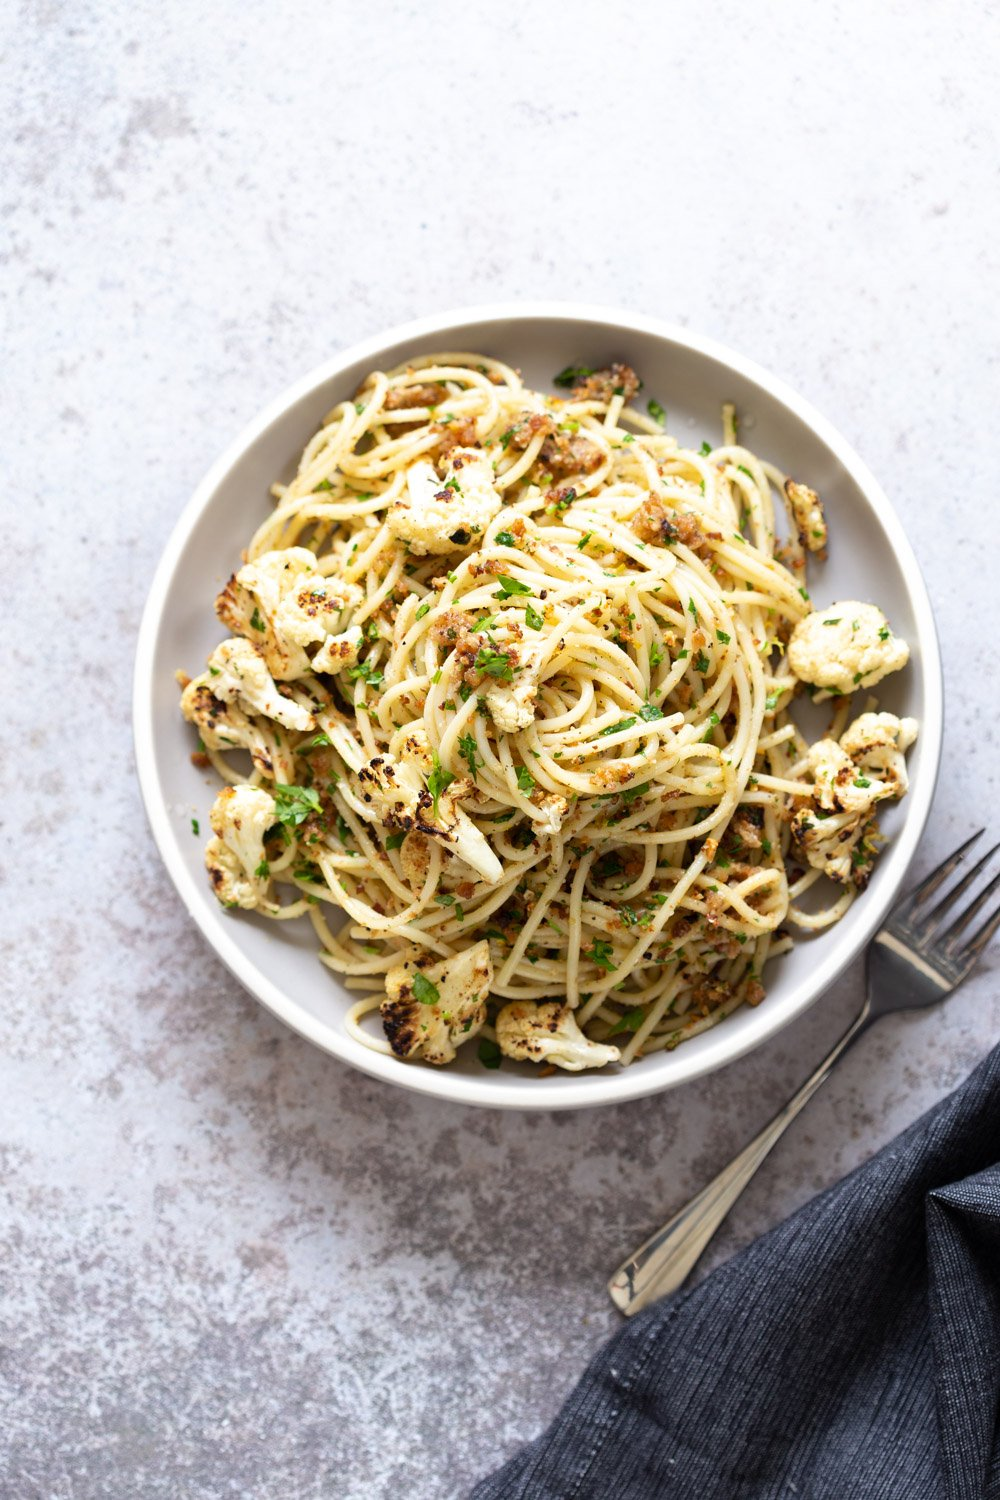 Spaghetti with toasted garlic breadcrumbs and blistered cauliflower